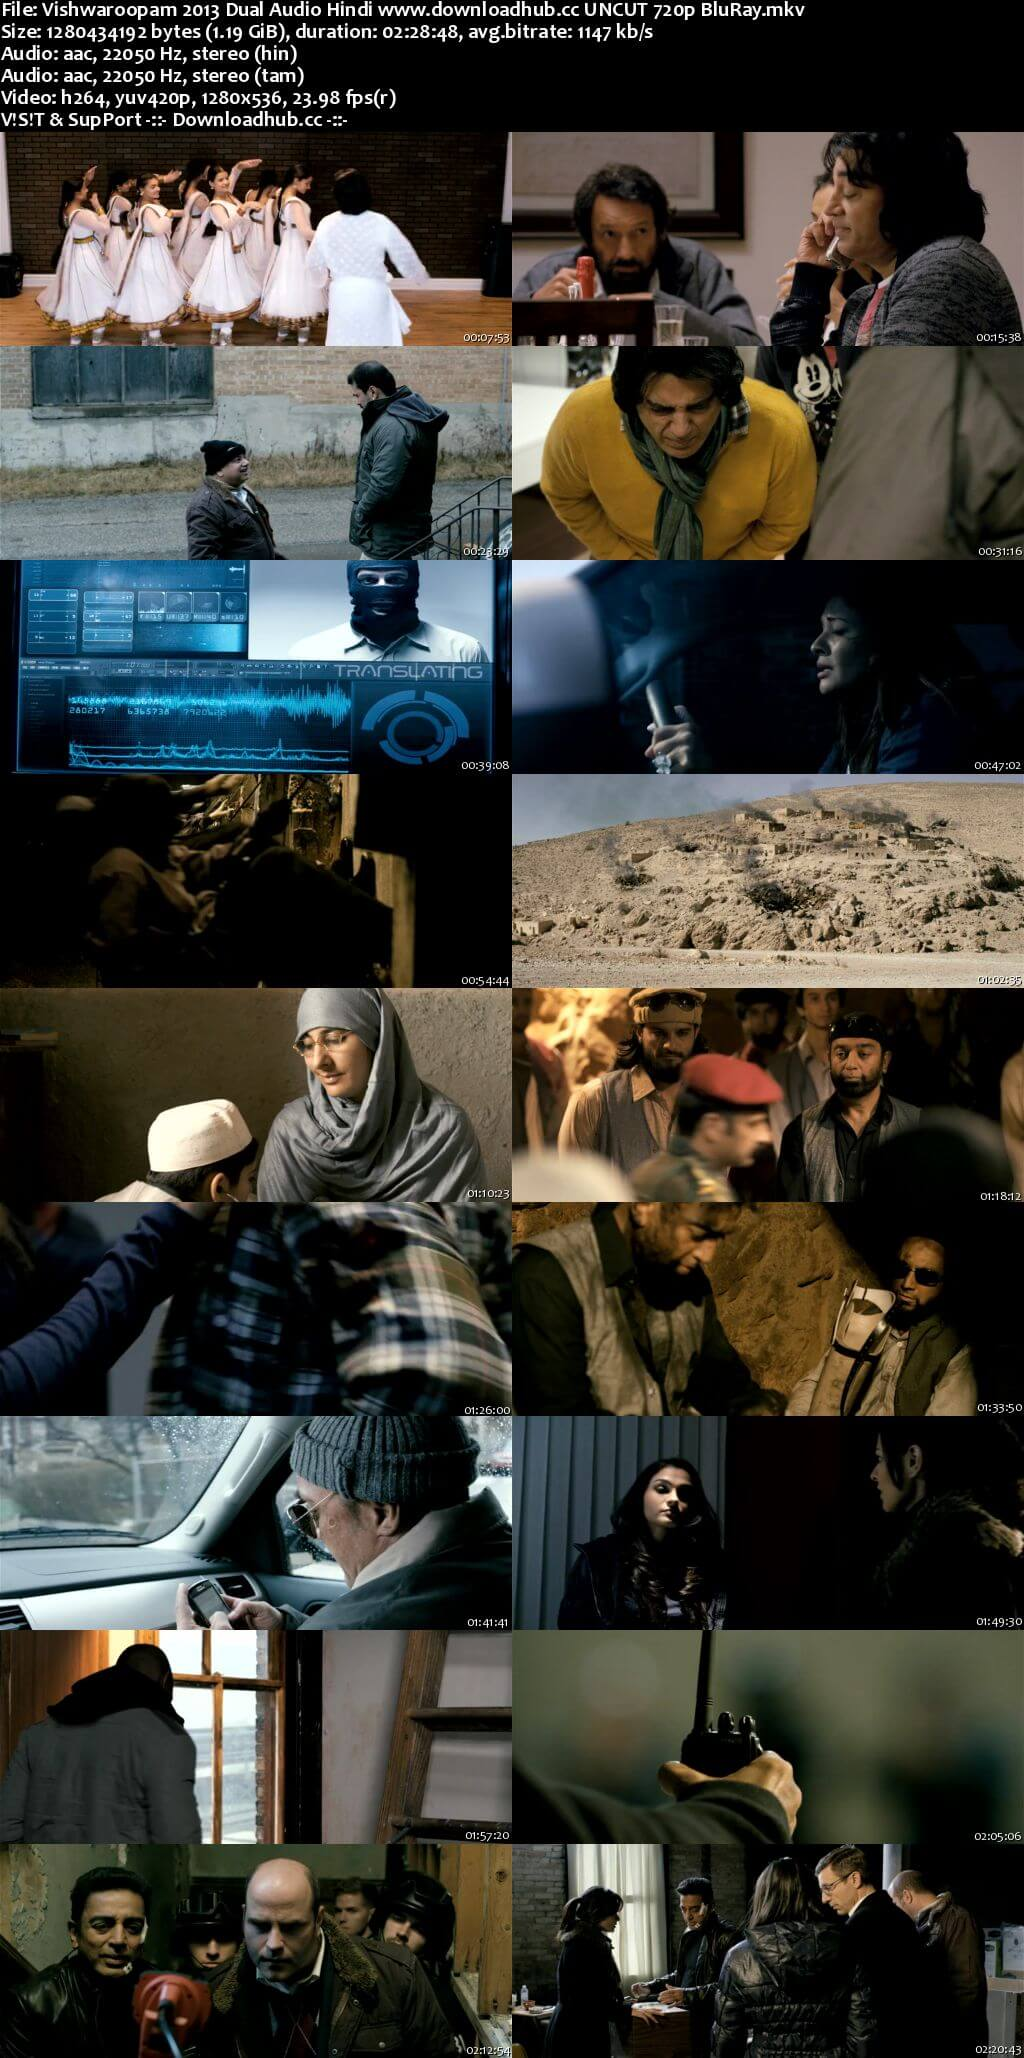 Vishwaroopam 2013 Hindi Dual Audio 720p UNCUT BluRay